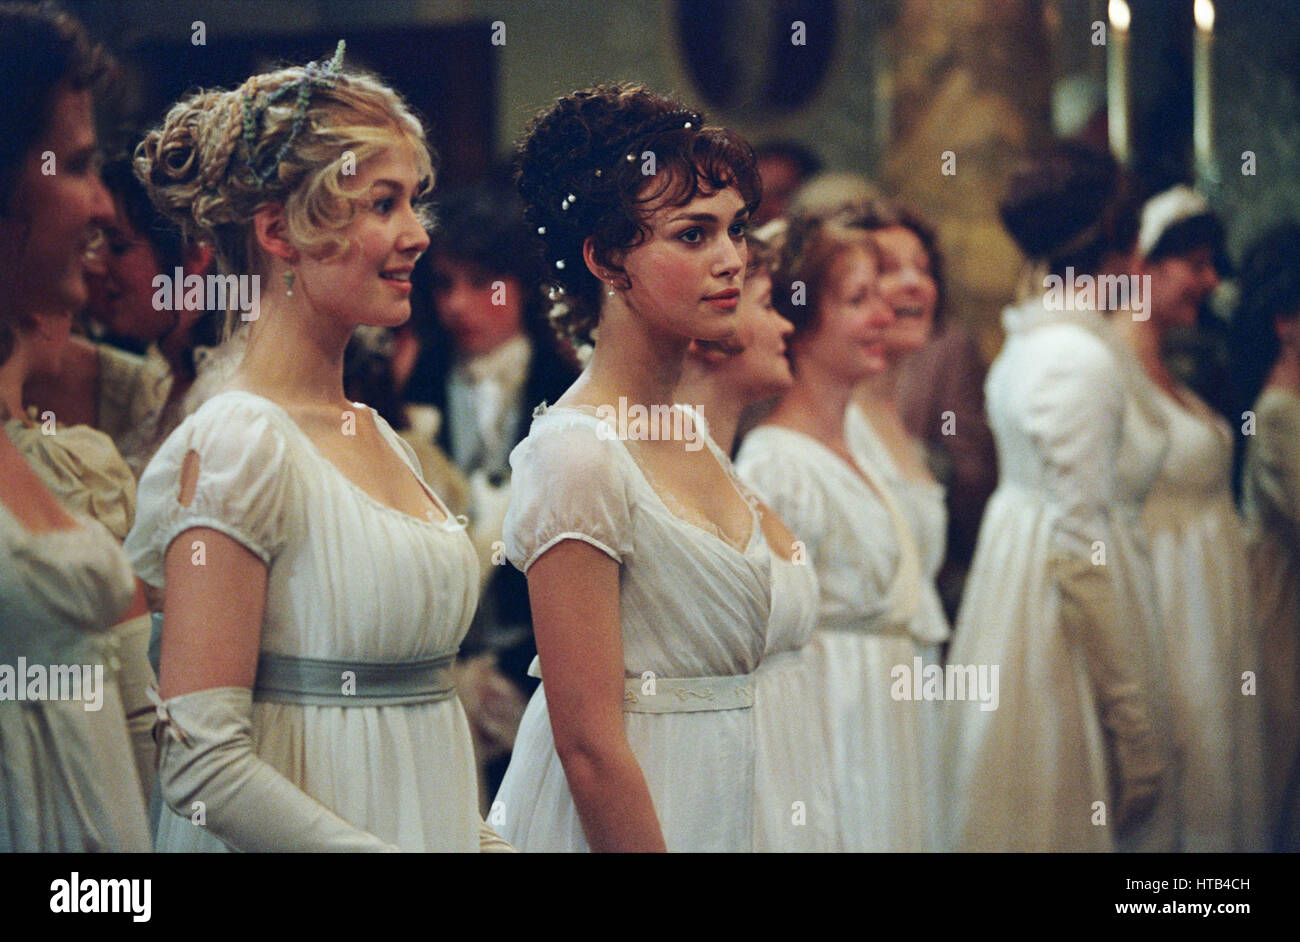 PRIDE AND PREJUDICE (2005)  ROSAMUND PIKE  KEIRA KNIGHTLEY  JOE WRIGHT (DIR)  UNIVERSAL PICTURES/MOVIESTORE COLLECTION - Stock Image